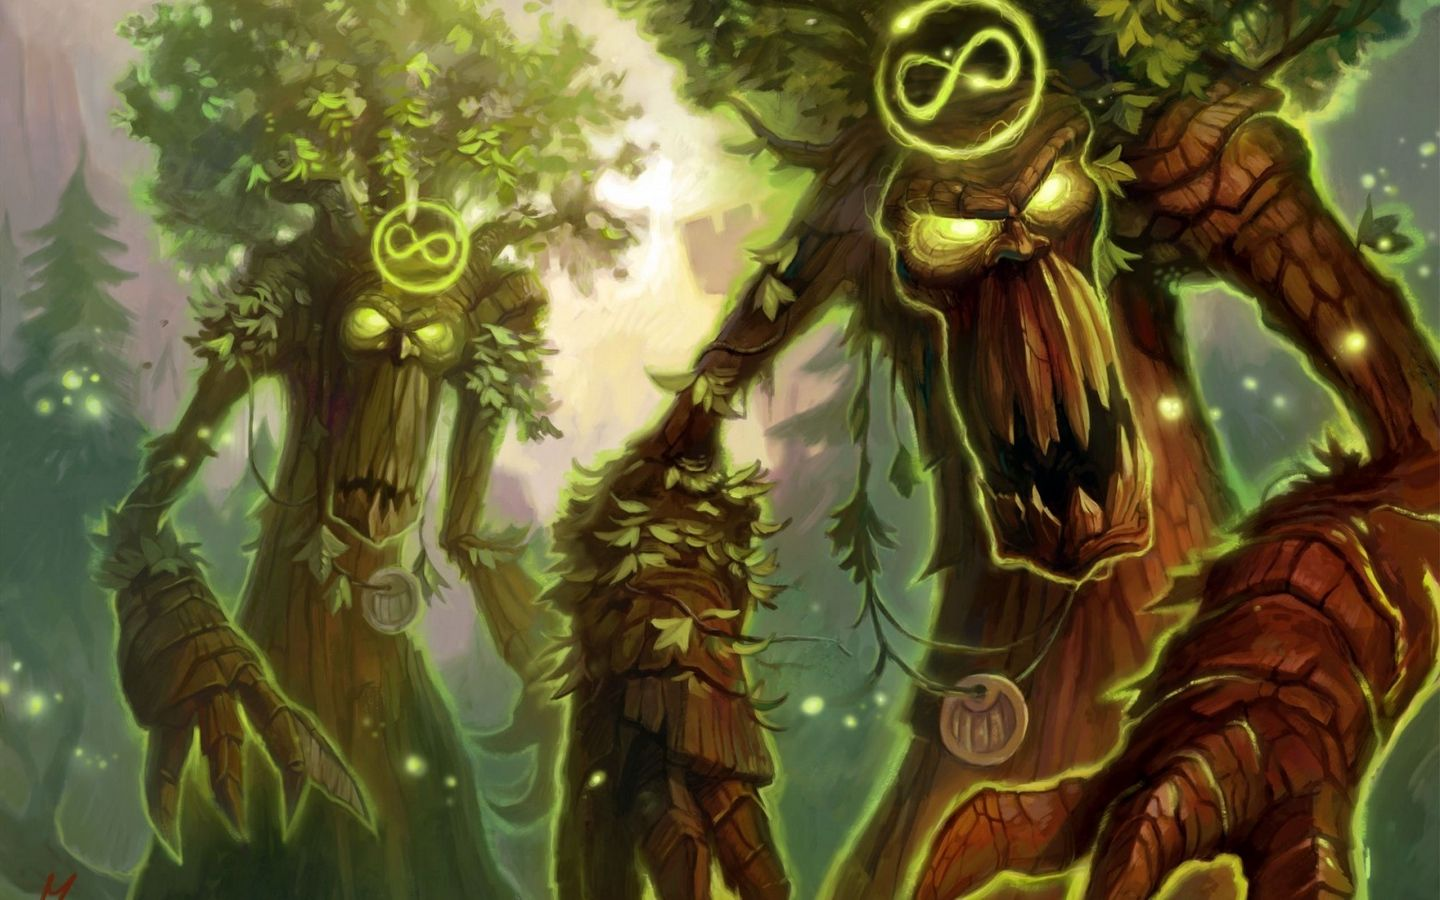 Druid Hearthstone Wallpaper World Of Warcraft Druid Hearthstone Wallpaper Druid